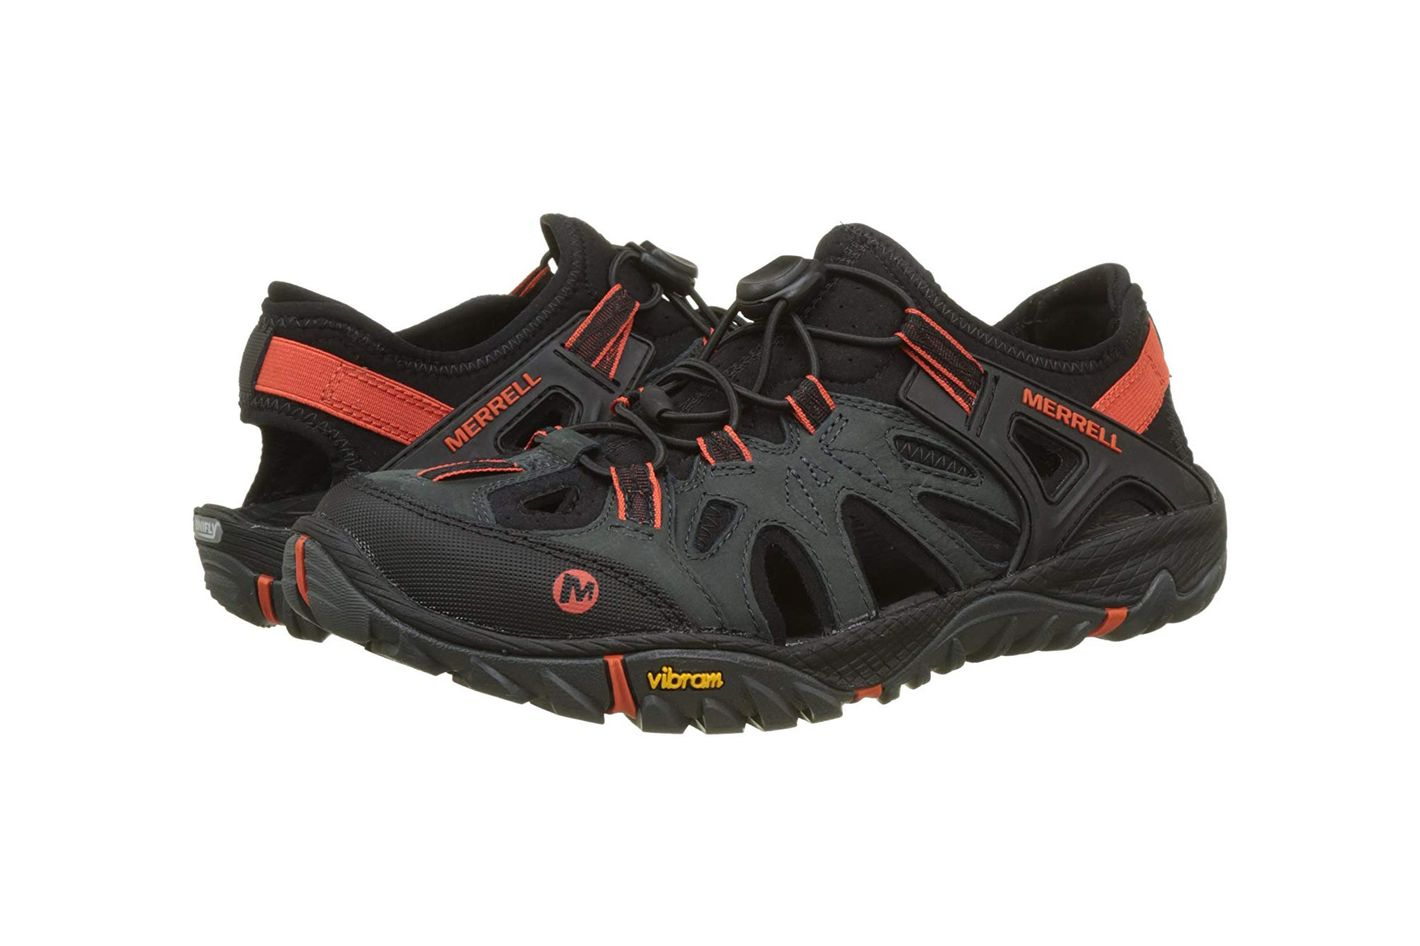 52c68ab9d5 Merrell Men s All Out Blaze Sieve Water Shoe at Amazon